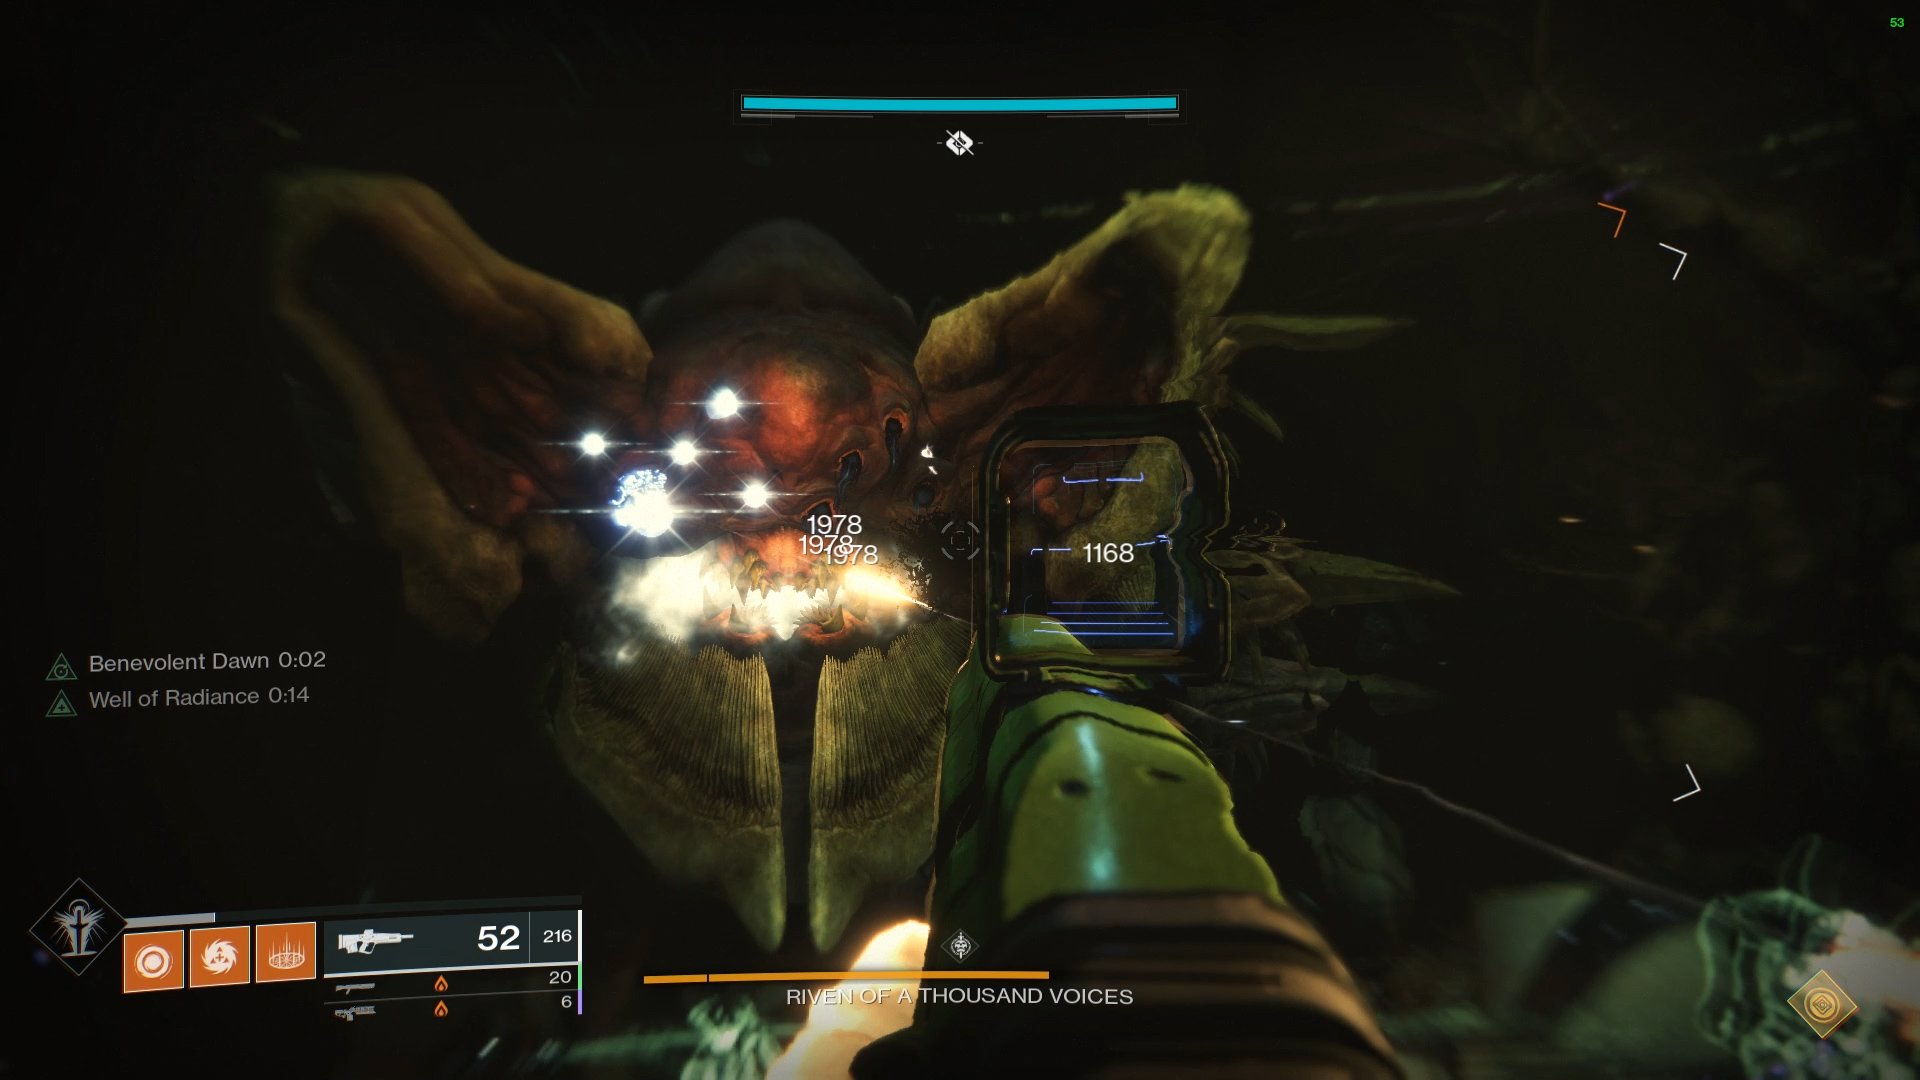 Players must remember the eye they chose and then destroy it after dealing damage to Taken orb in Riven's mouth.